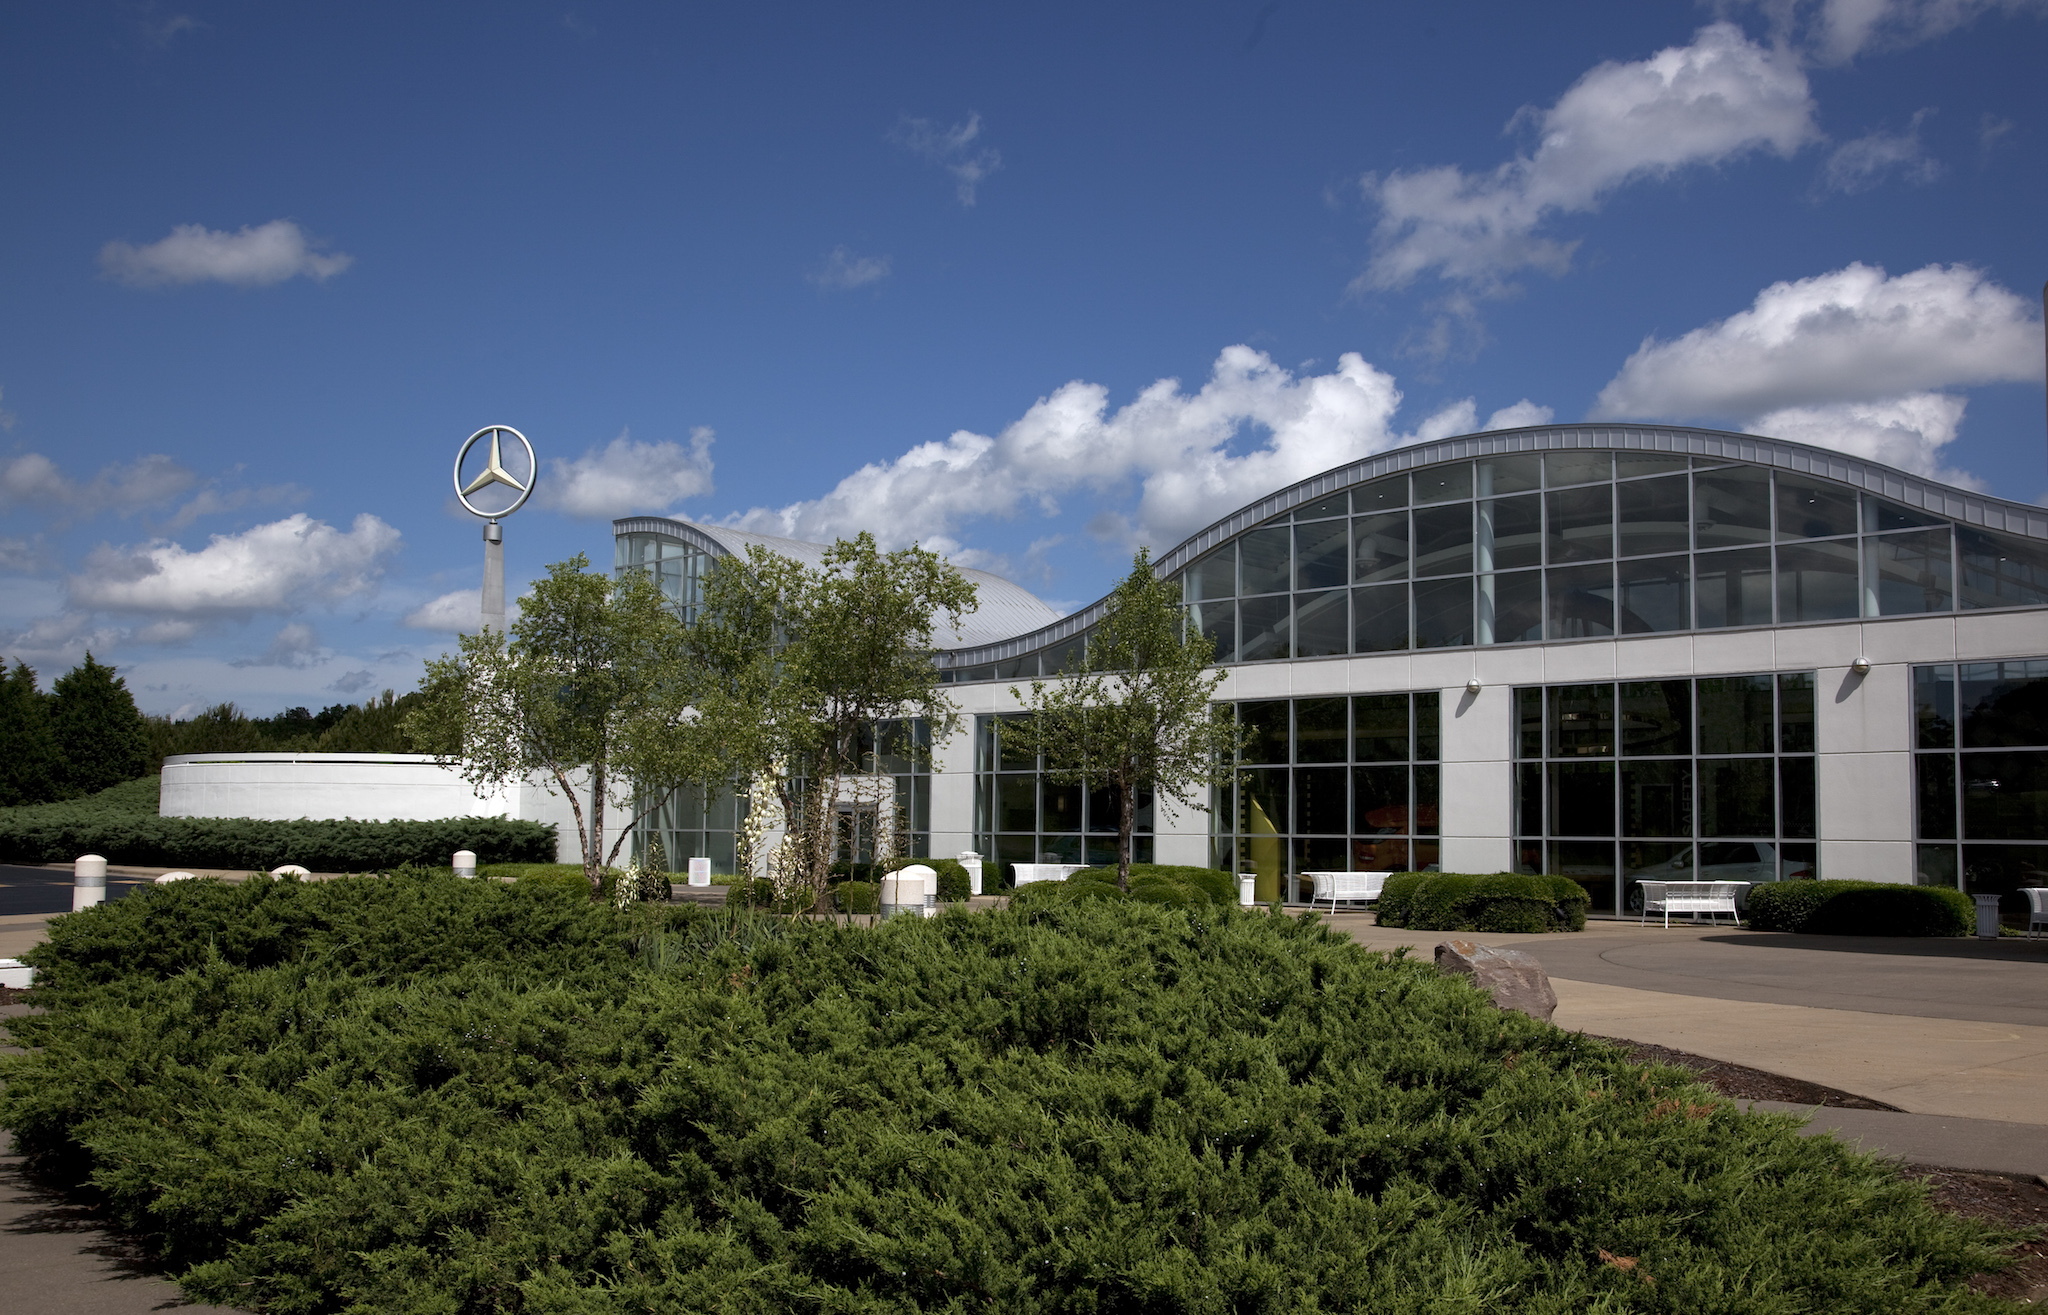 The Mercedes Benz factory in Tuscaloosa Alabama